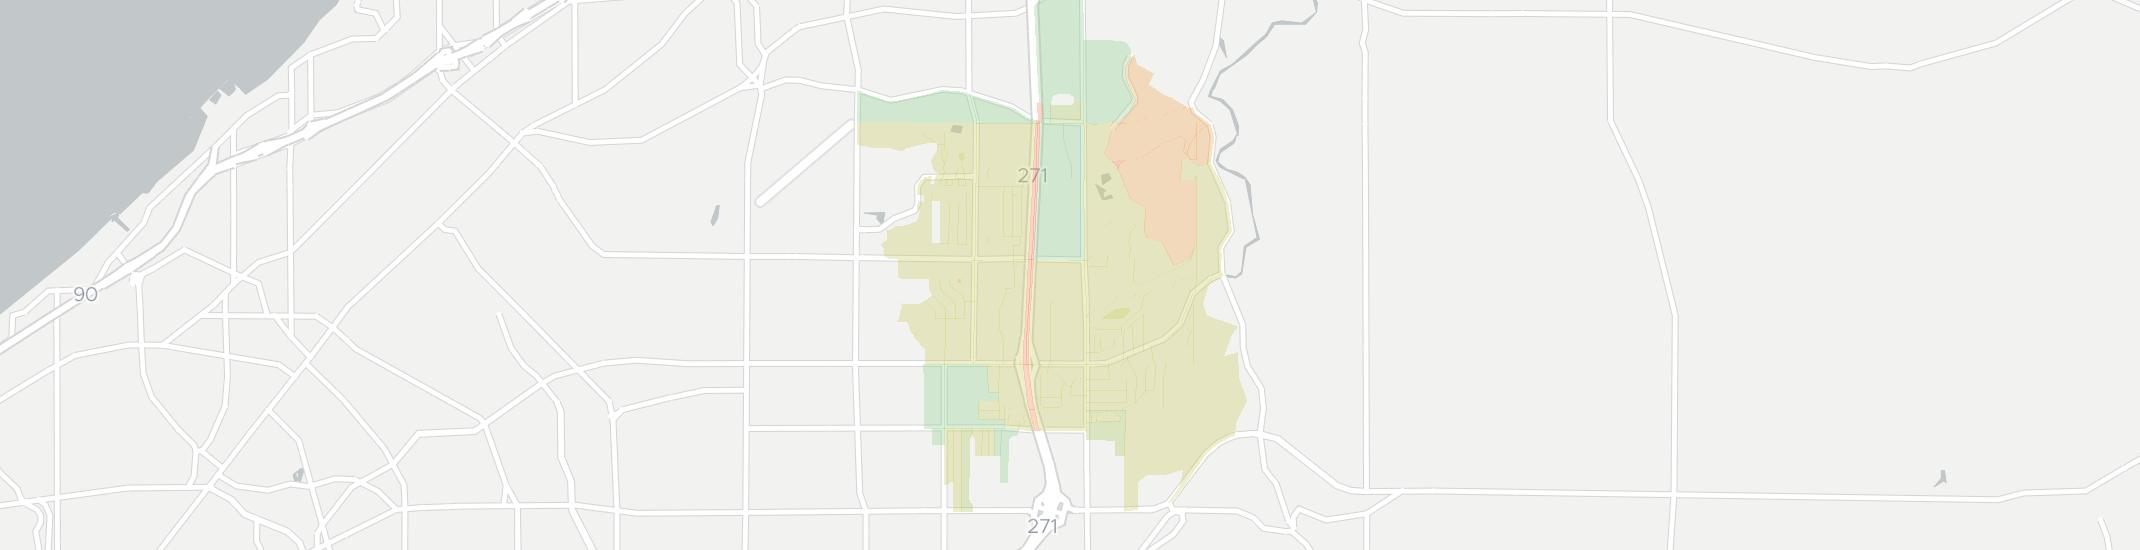 Mayfield Ohio Map.Internet Providers In Mayfield Oh Compare 18 Providers